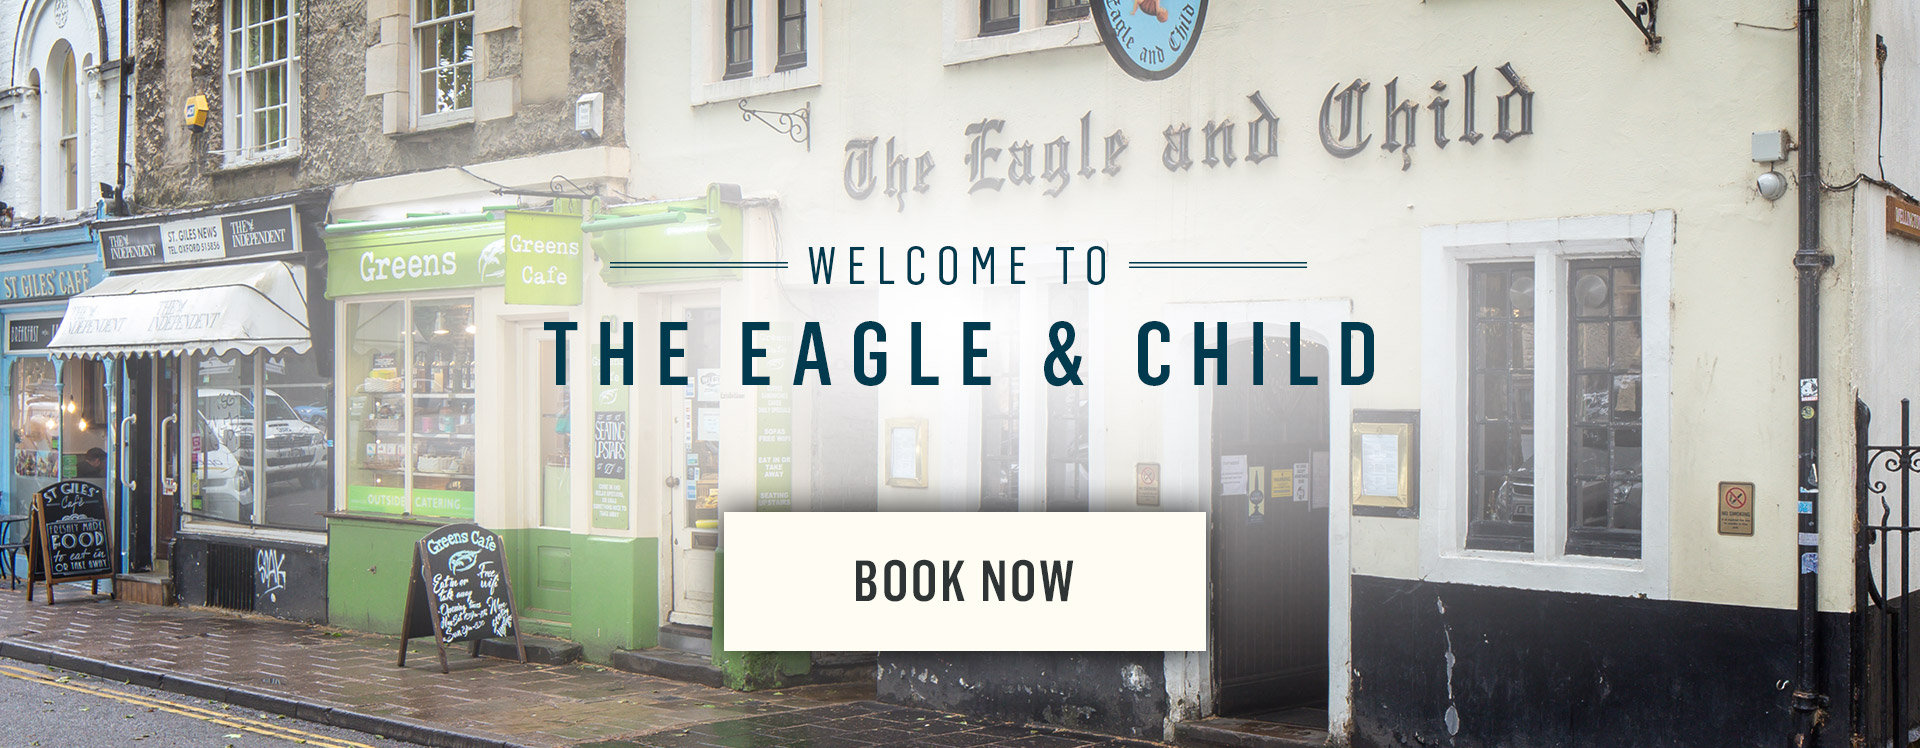 Welcome to The Eagle and Child - Book Now